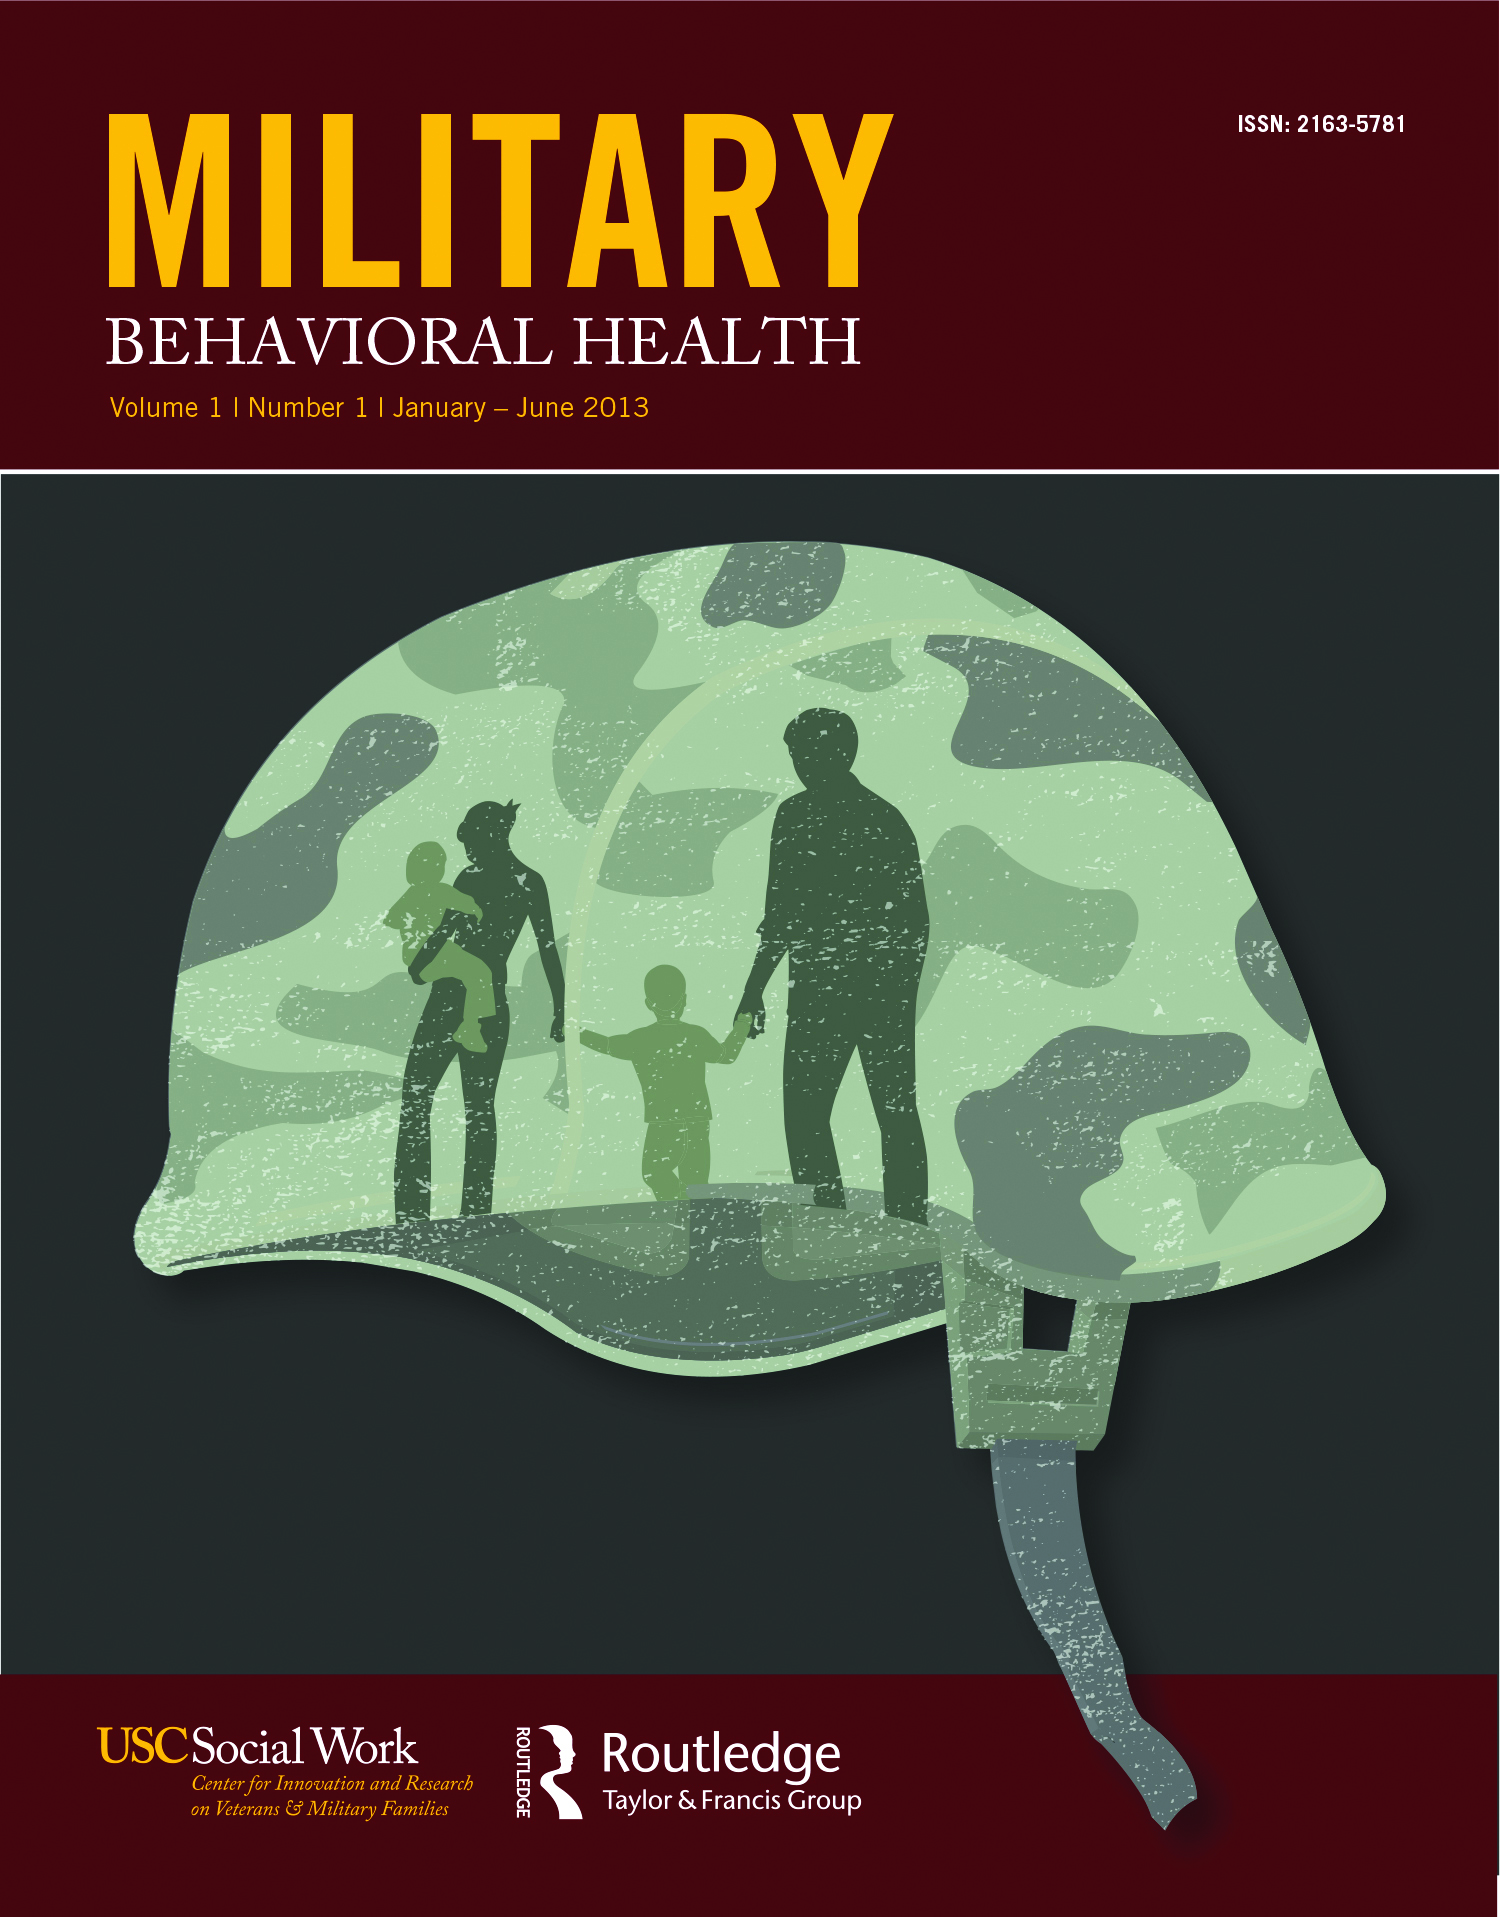 USC CIR Journal Military Behavioral Health Journal